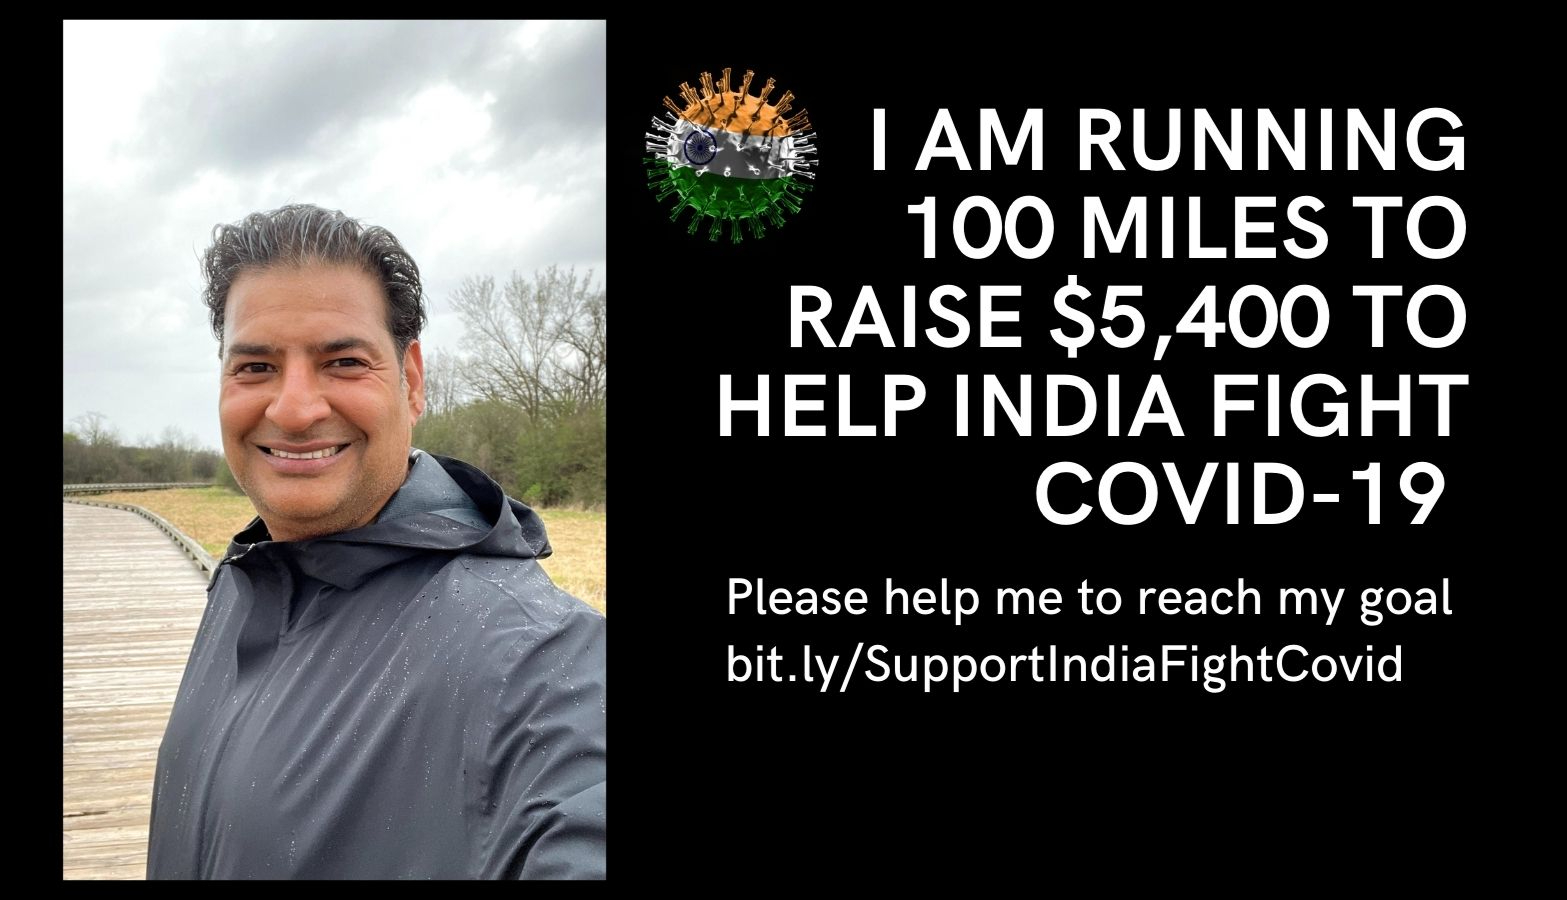 #TogetherForIndia - Rajneesh Sehgal is Running 100 miles to raise money to help India fight COVID-19